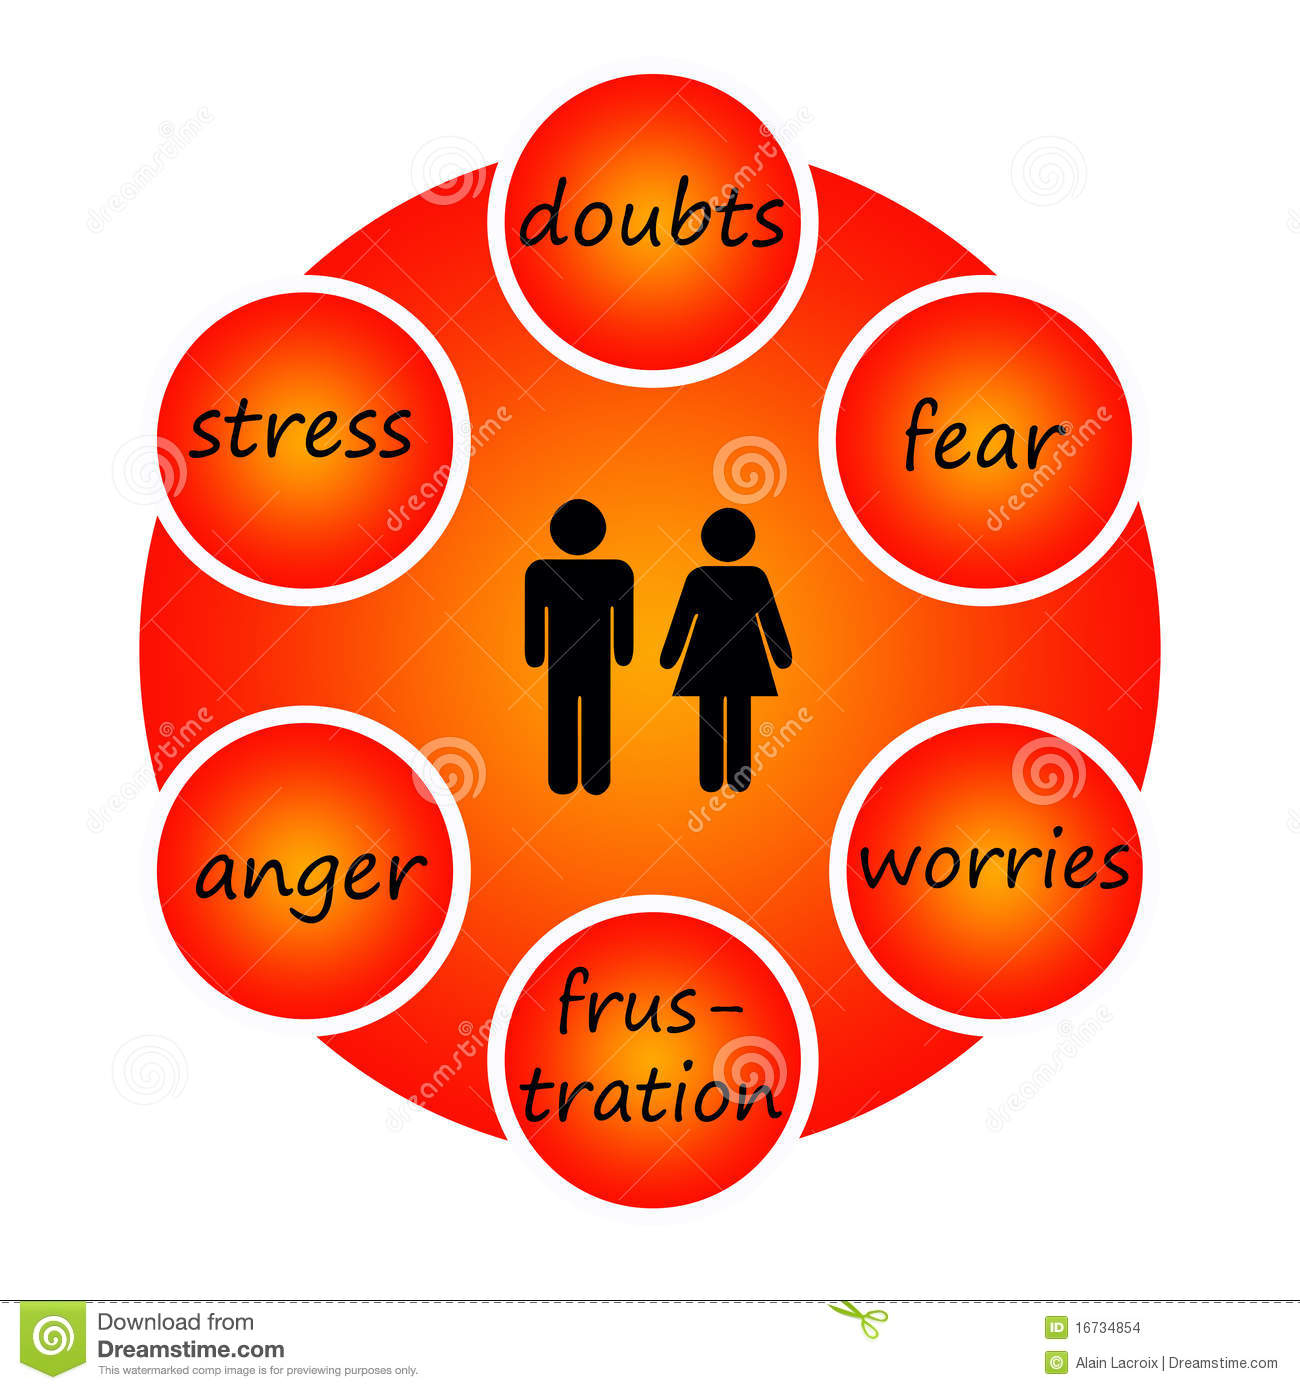 problems teenagers face Teenagers face real problems on a daily basis during the most awkward growth stages of their lives between 13 and 19-years-old during this time, teens are exposed to some overwhelming external and internal struggles.